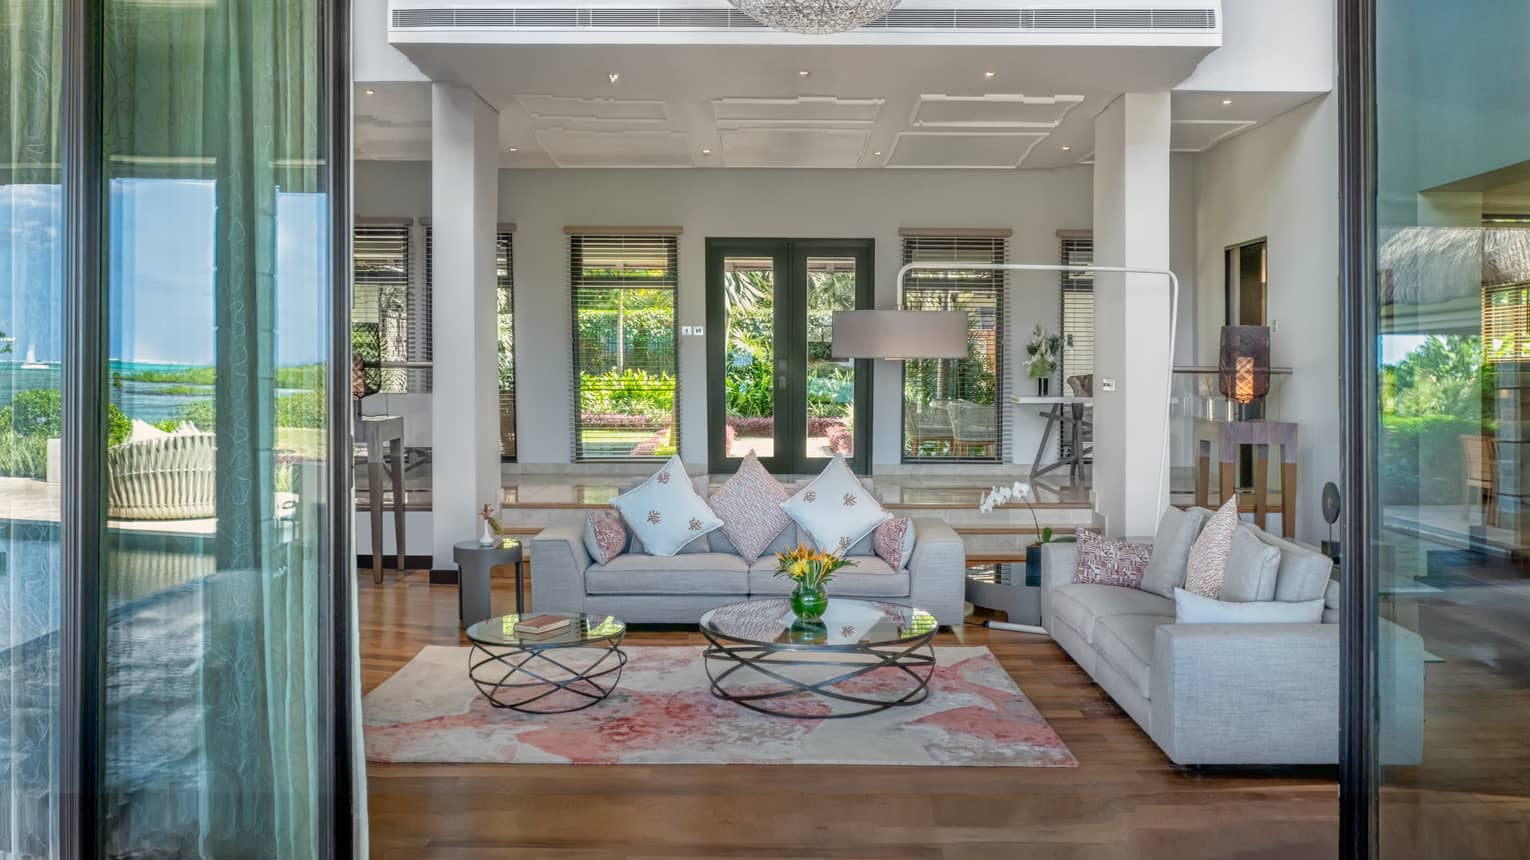 View past glass doors to living room with plush sofas, white pillars